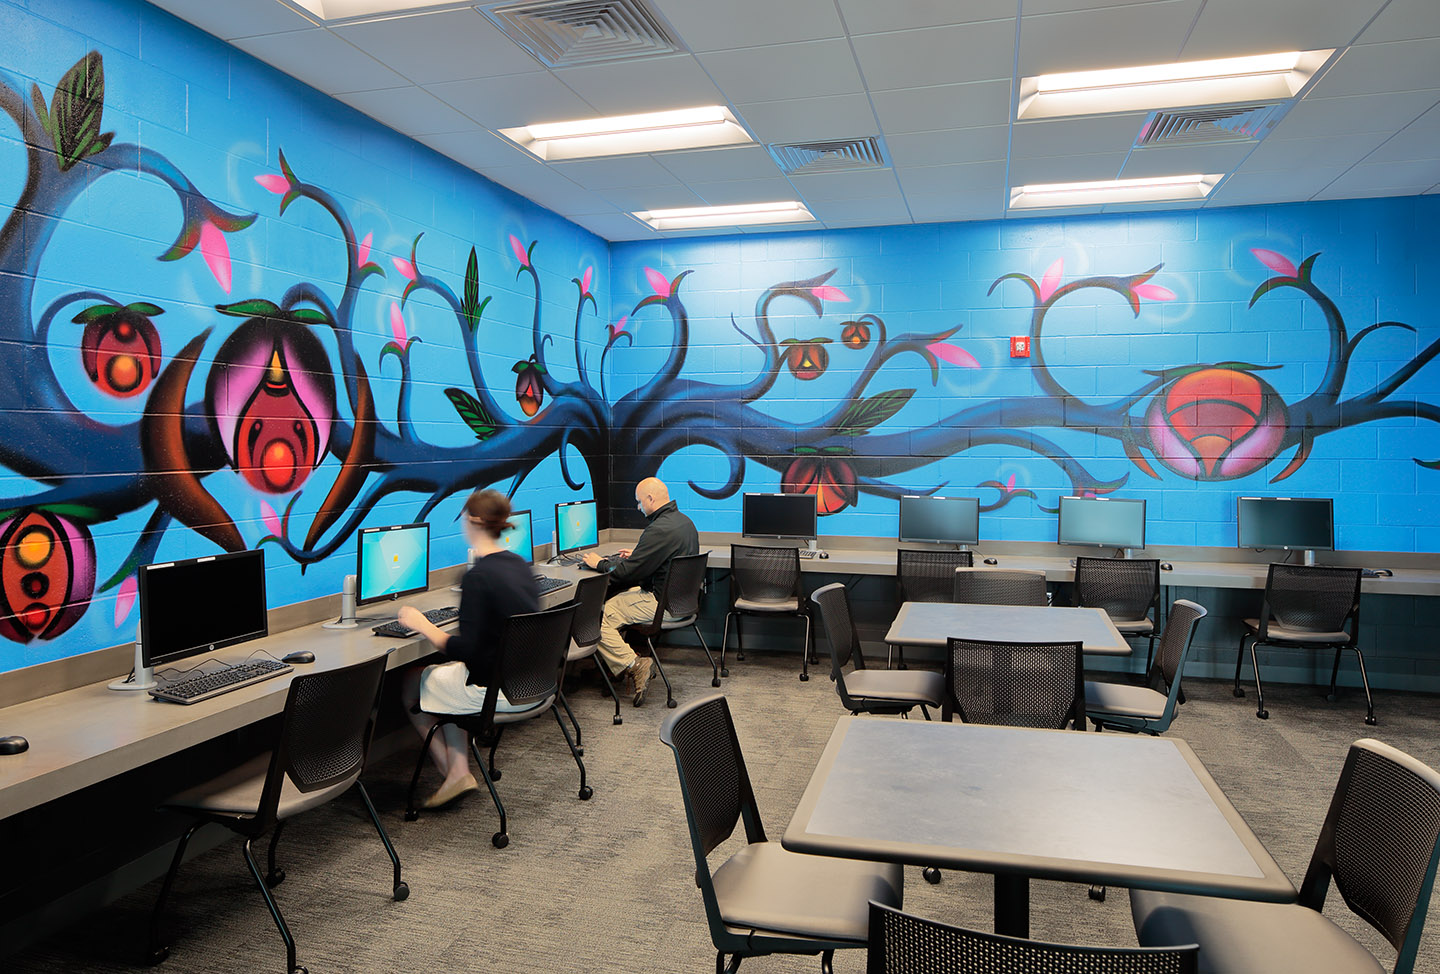 Above: The public computer room is open to local schoolchildren, families and community members without internet access or computers at home. The lab features artwork by ArtsTech's Aaron Sutton.